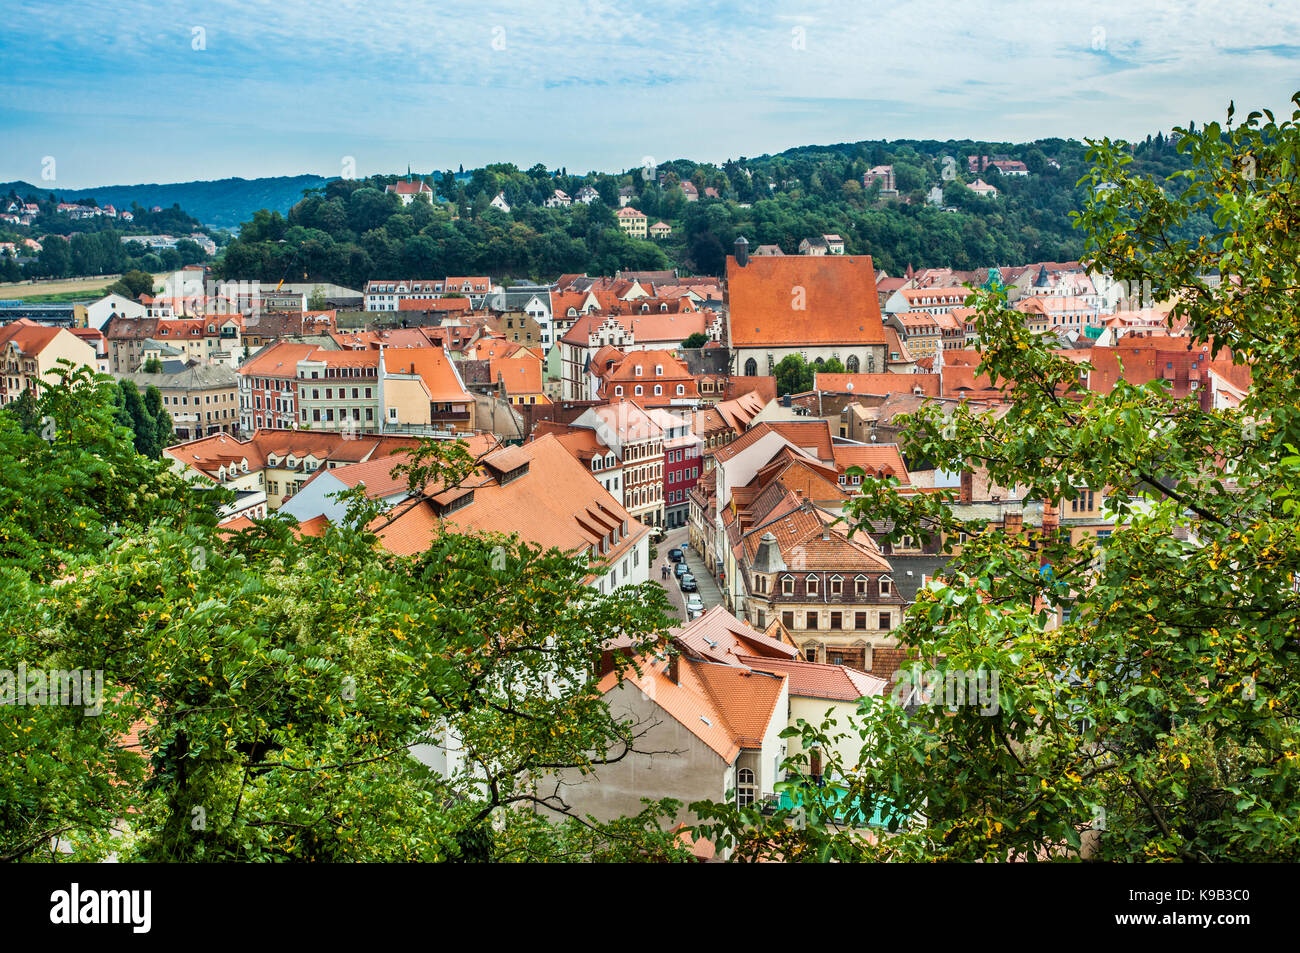 Germany, Saxony, Meissen, view over the old town roofs from Albrechtsburg castle hill - Stock Image